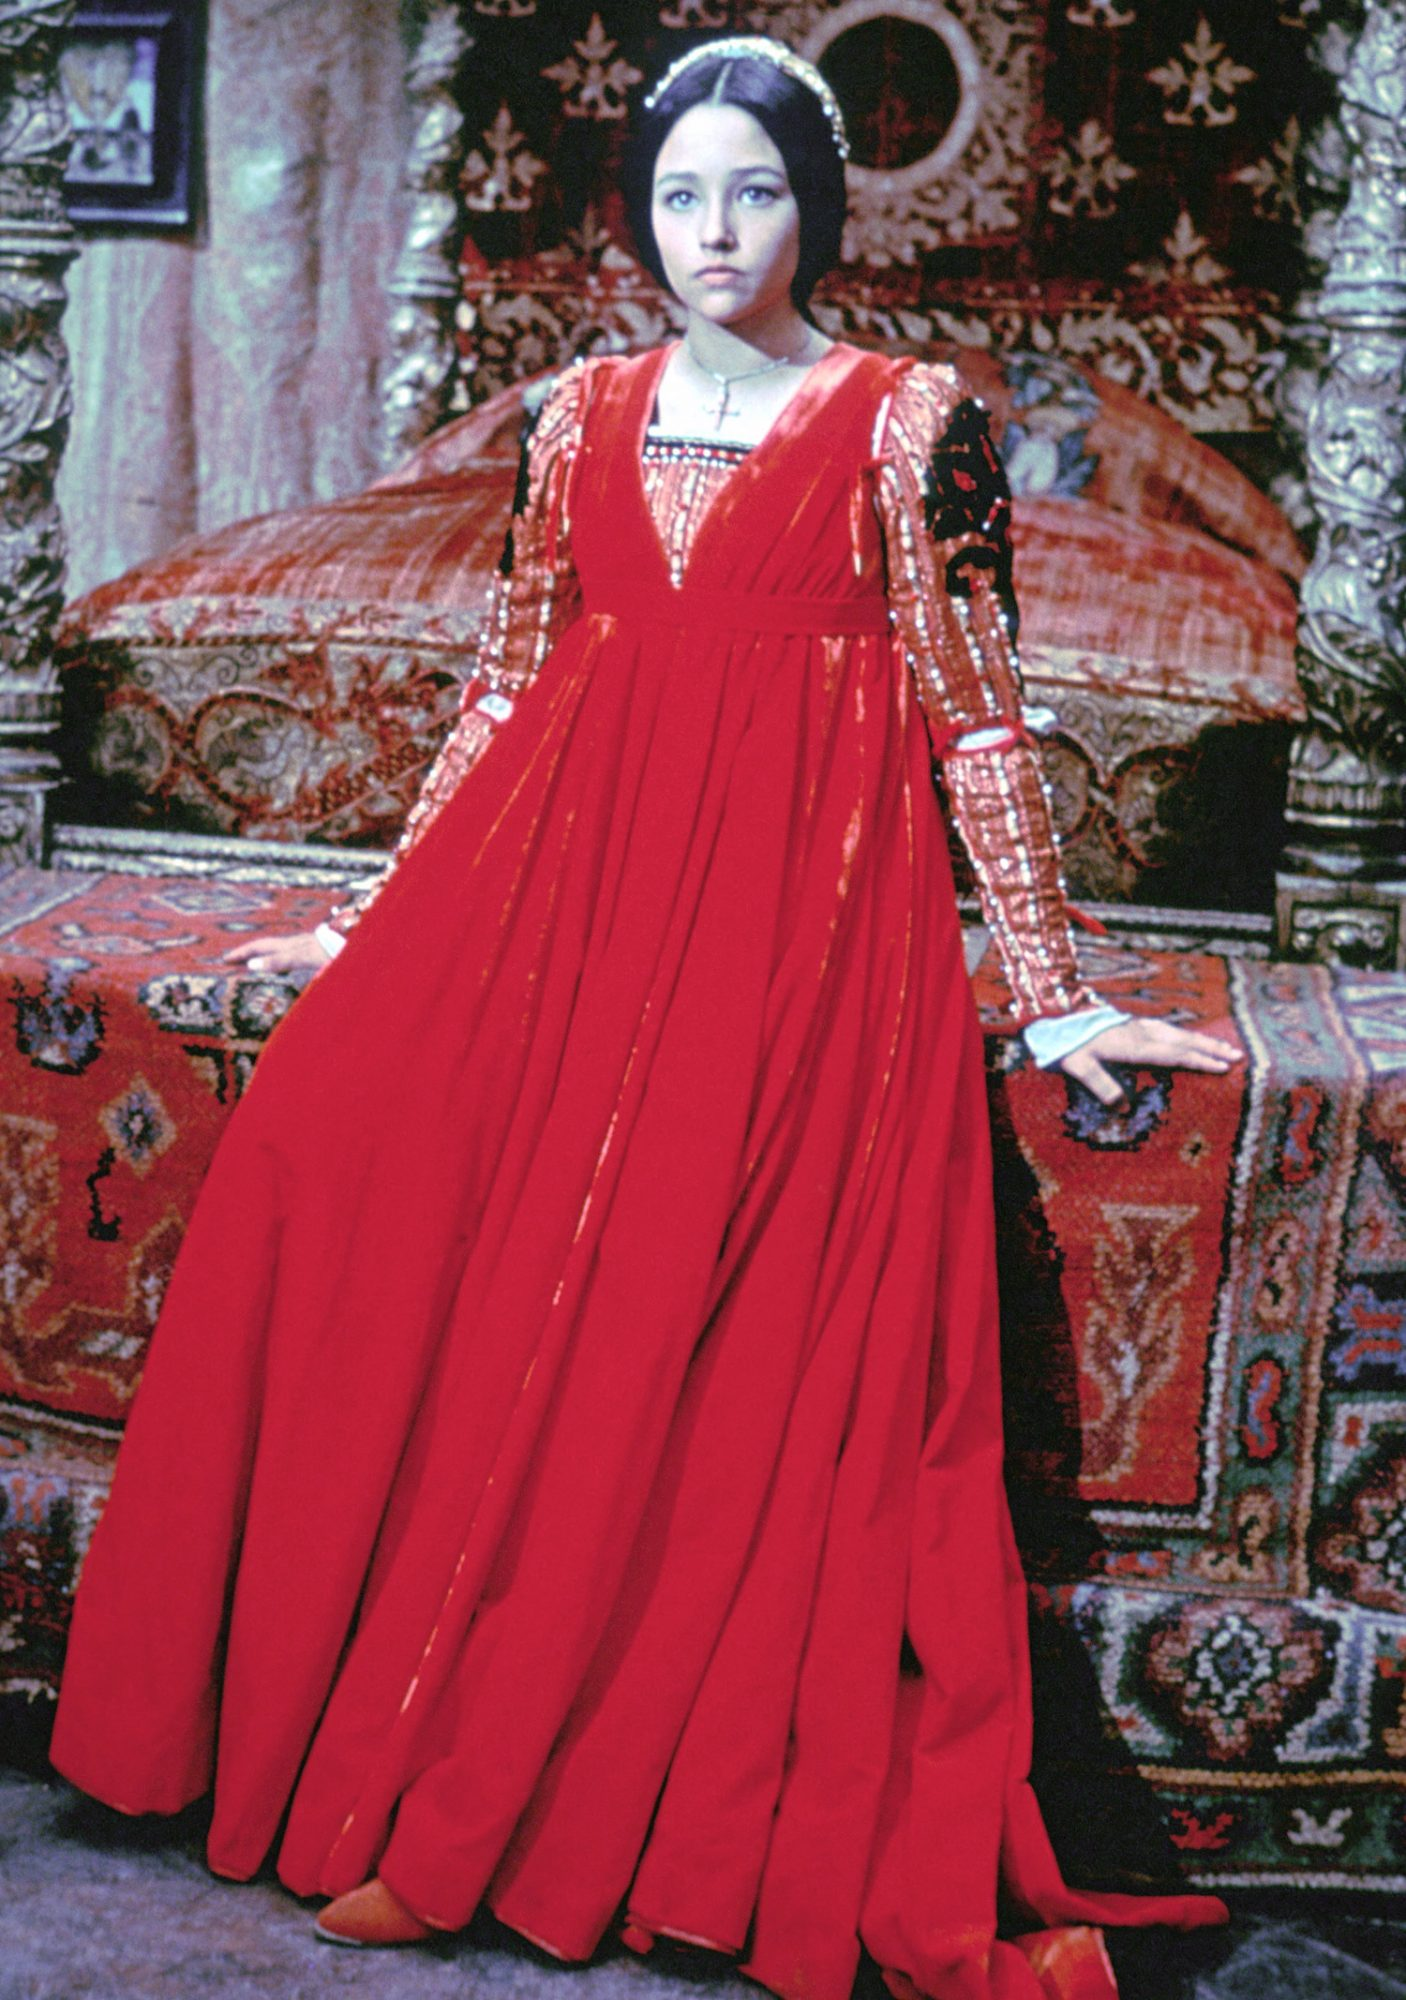 ROMEO AND JULIET, Olivia Hussey, 1968